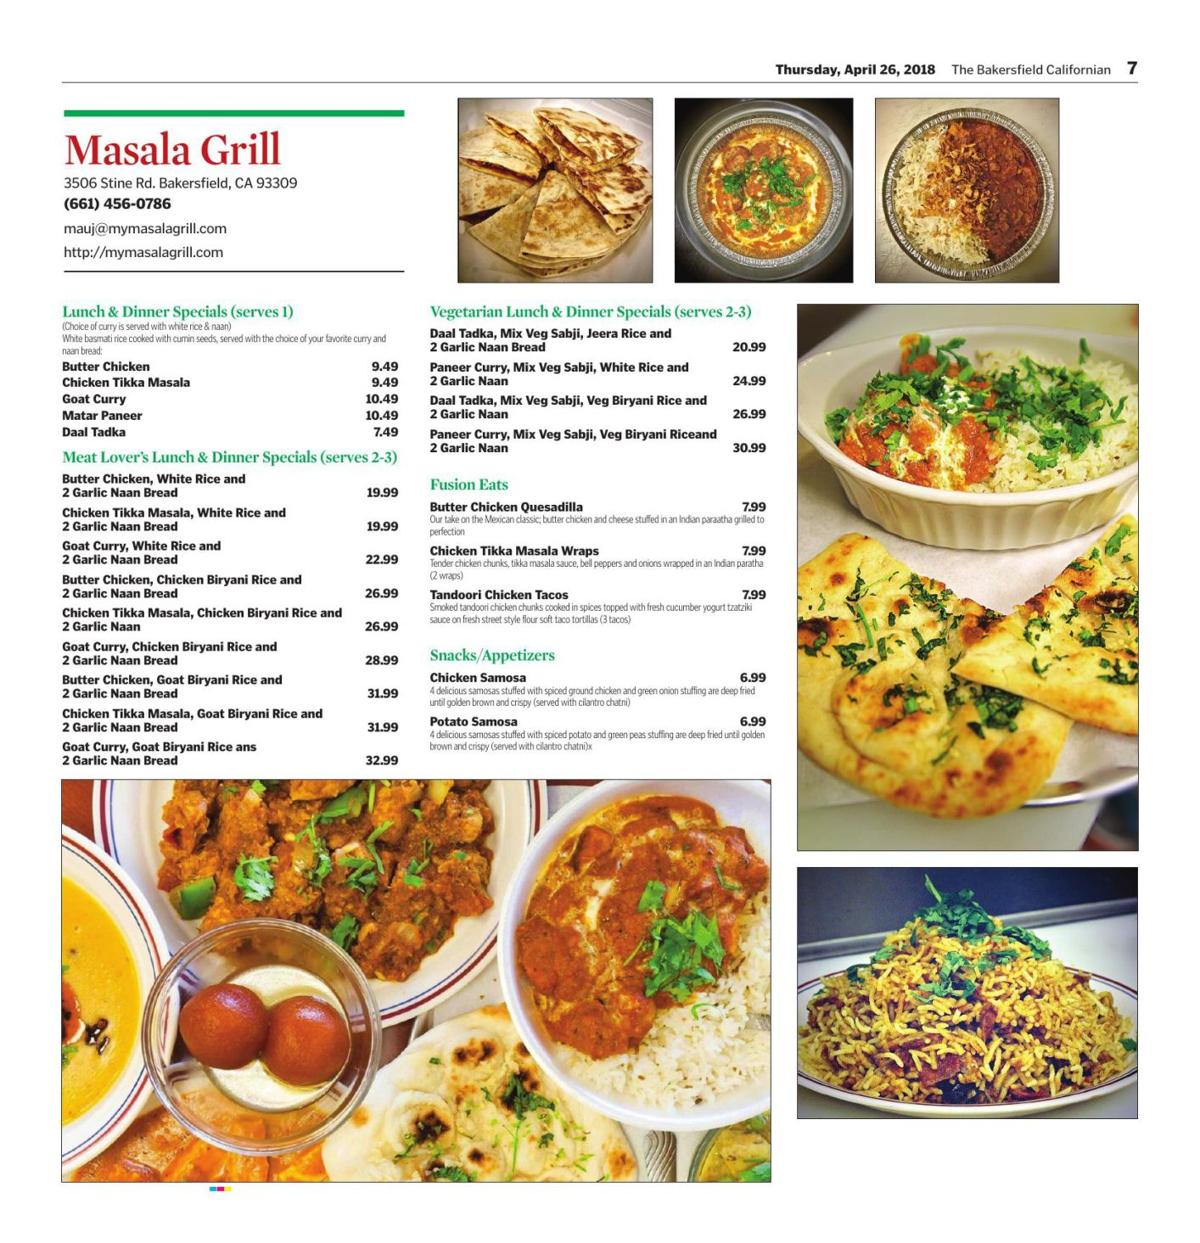 Masala grill whats on the menu bakersfield download pdf masala grill forumfinder Choice Image